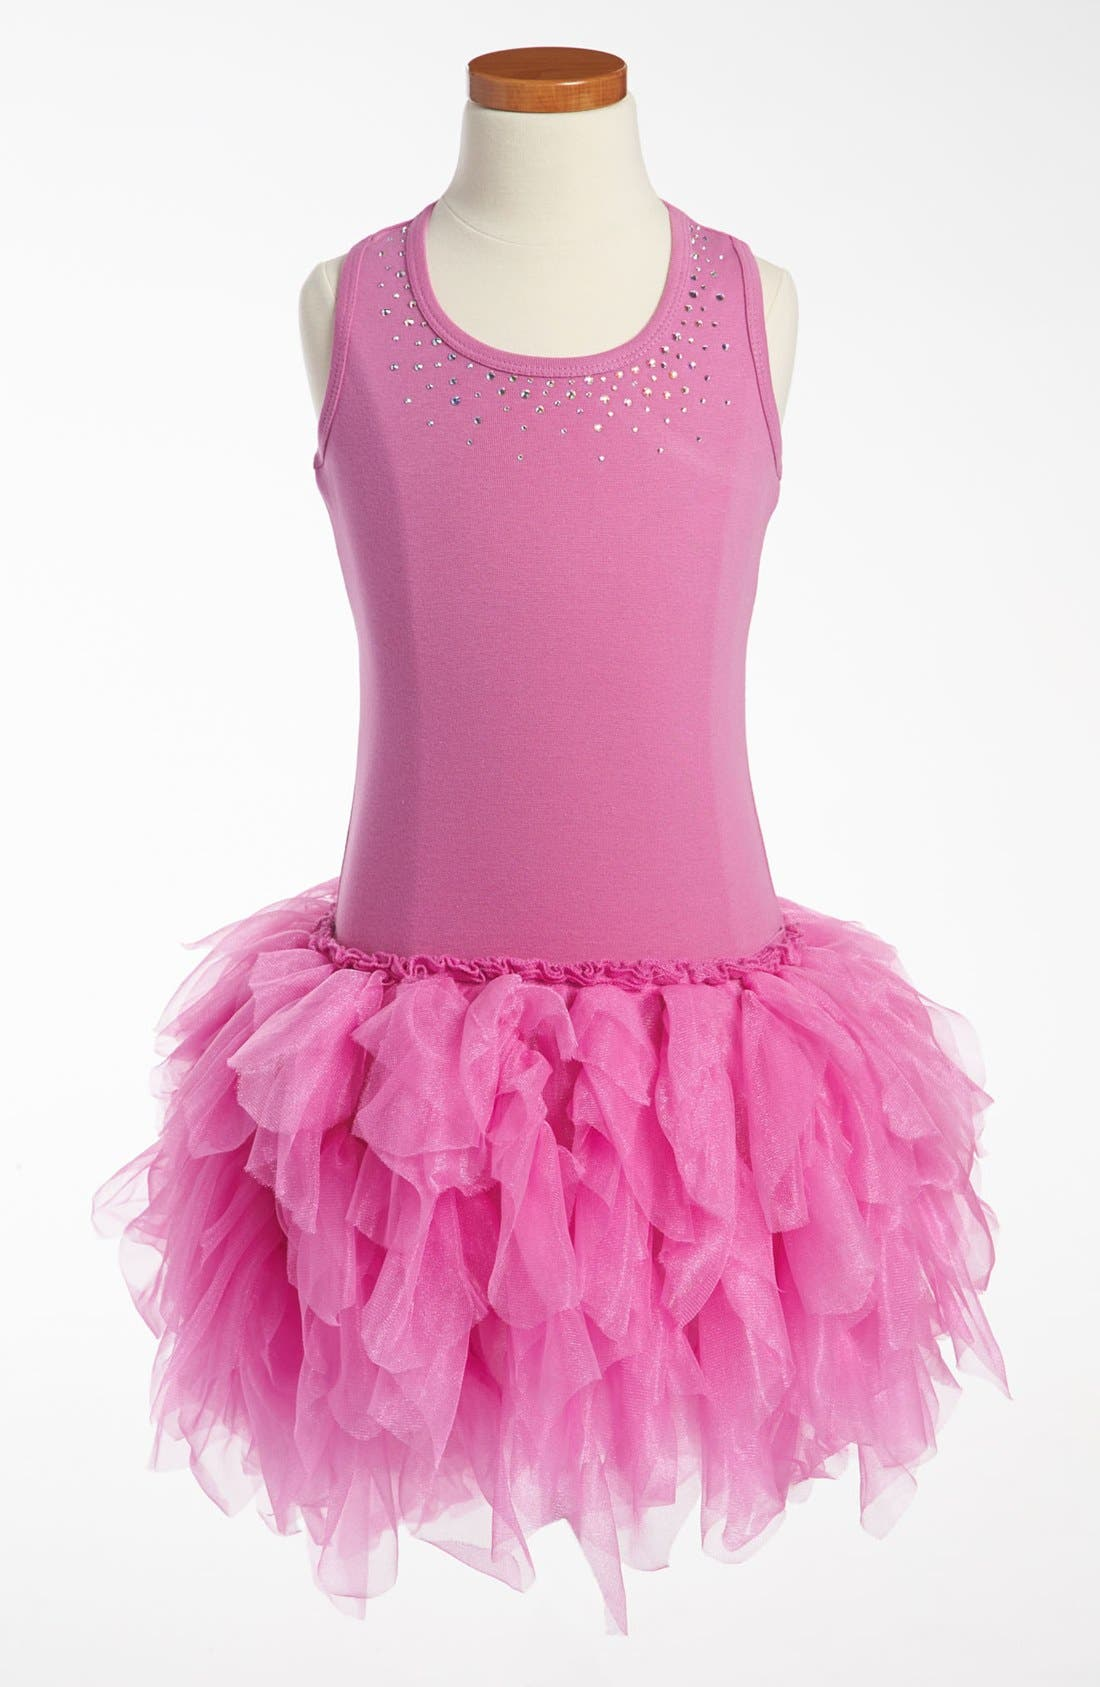 Main Image - Ooh! La, La! Couture 'Swarovski Necklace' Dress (Little Girls & Big Girls)